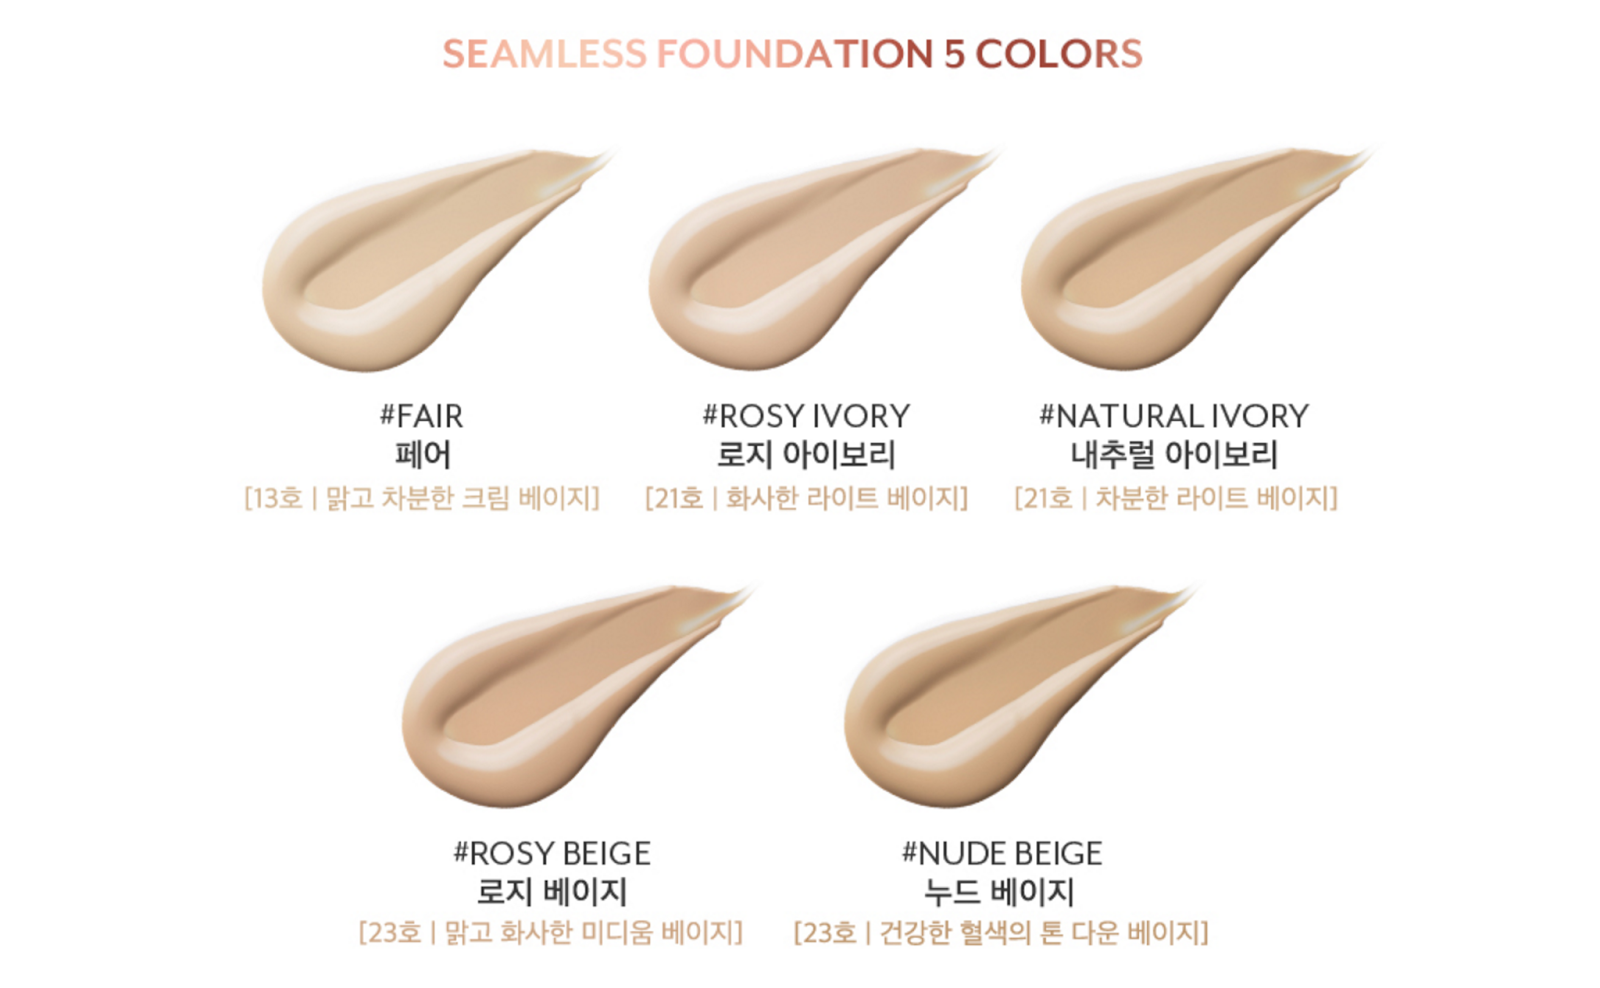 PONY EFFECT SEAMLESS FOUNDATION REVIEW | Liah Yoo | 1600 x 988 png 474kB